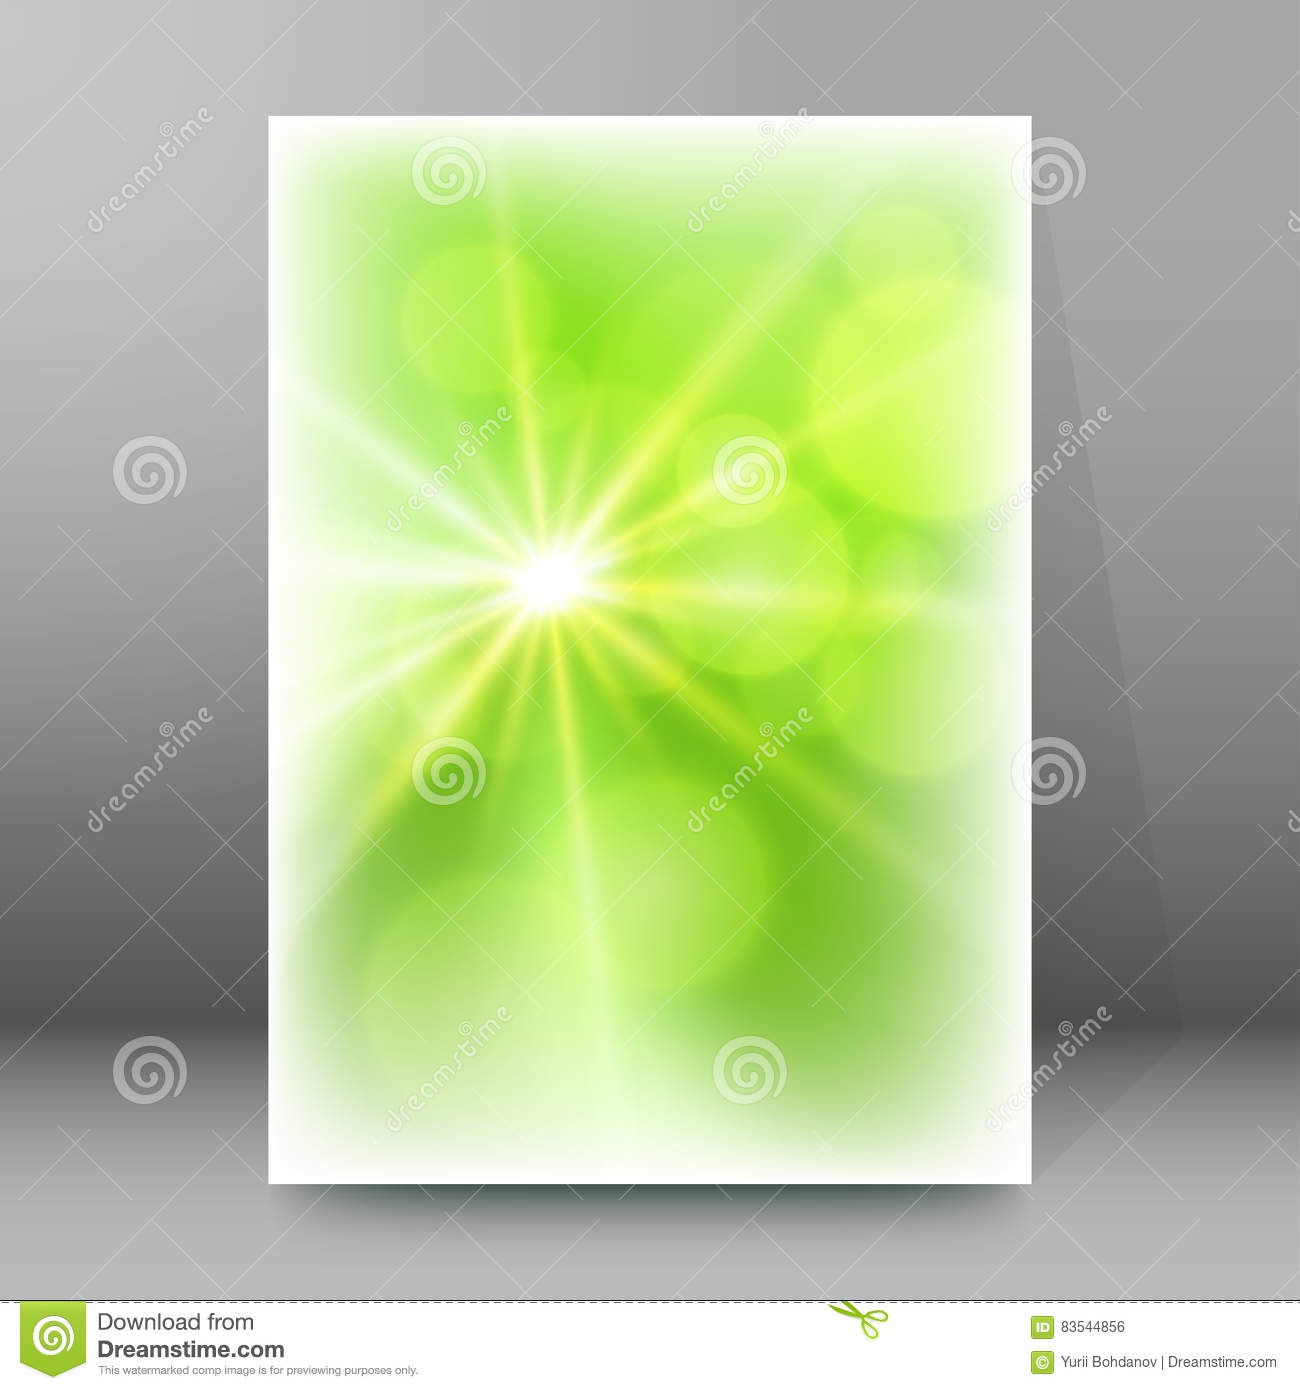 Download Background Report Brochure Cover Pages A4 Style Abstract Glow81 Stock Vector